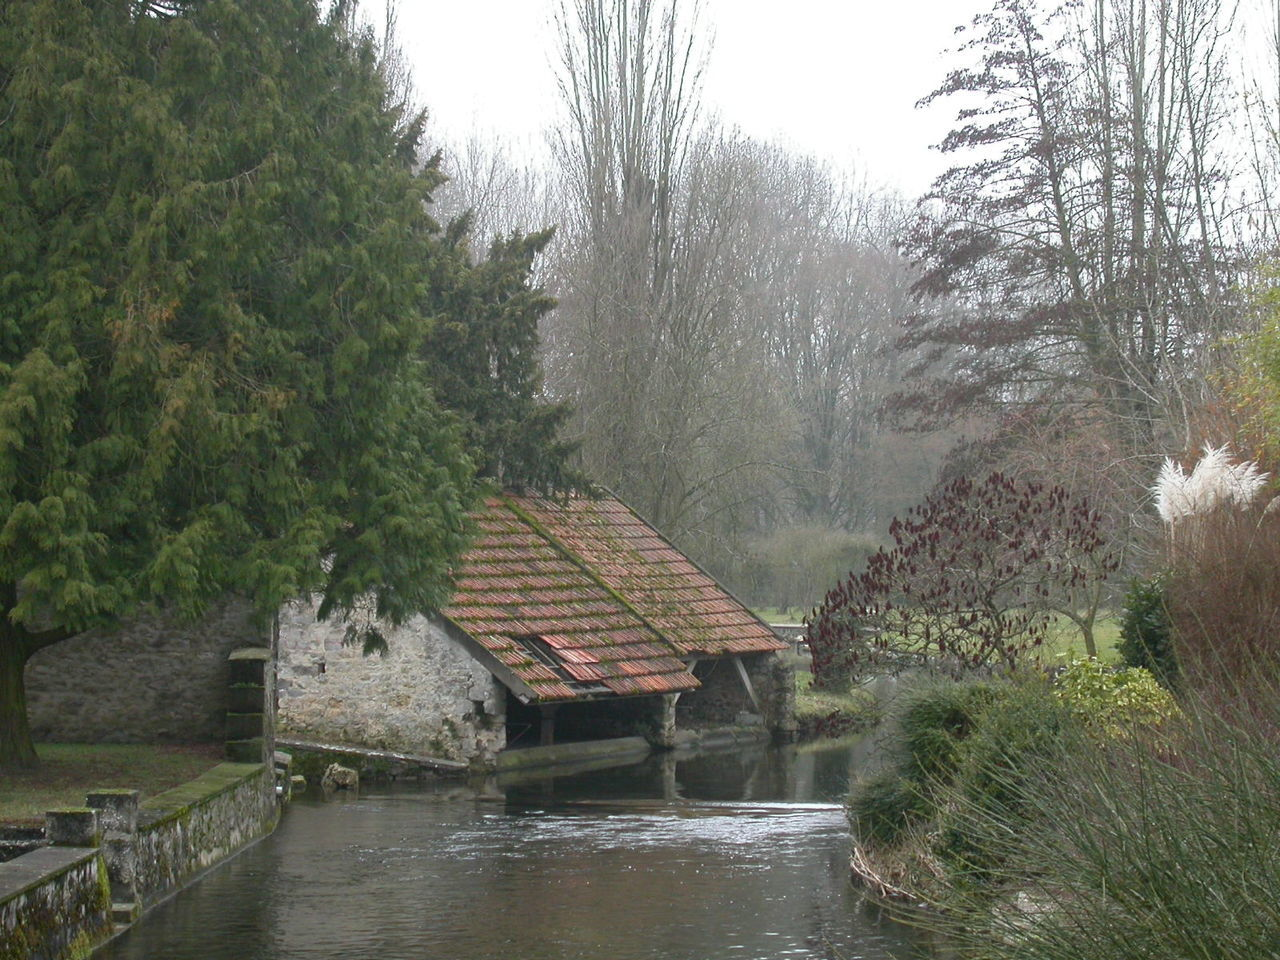 Architecture Beauty In Nature Built Structure Day France Lake Laverie Nature No People Outdoors River Scenics Sky Tree Water Water Wheel Watermill